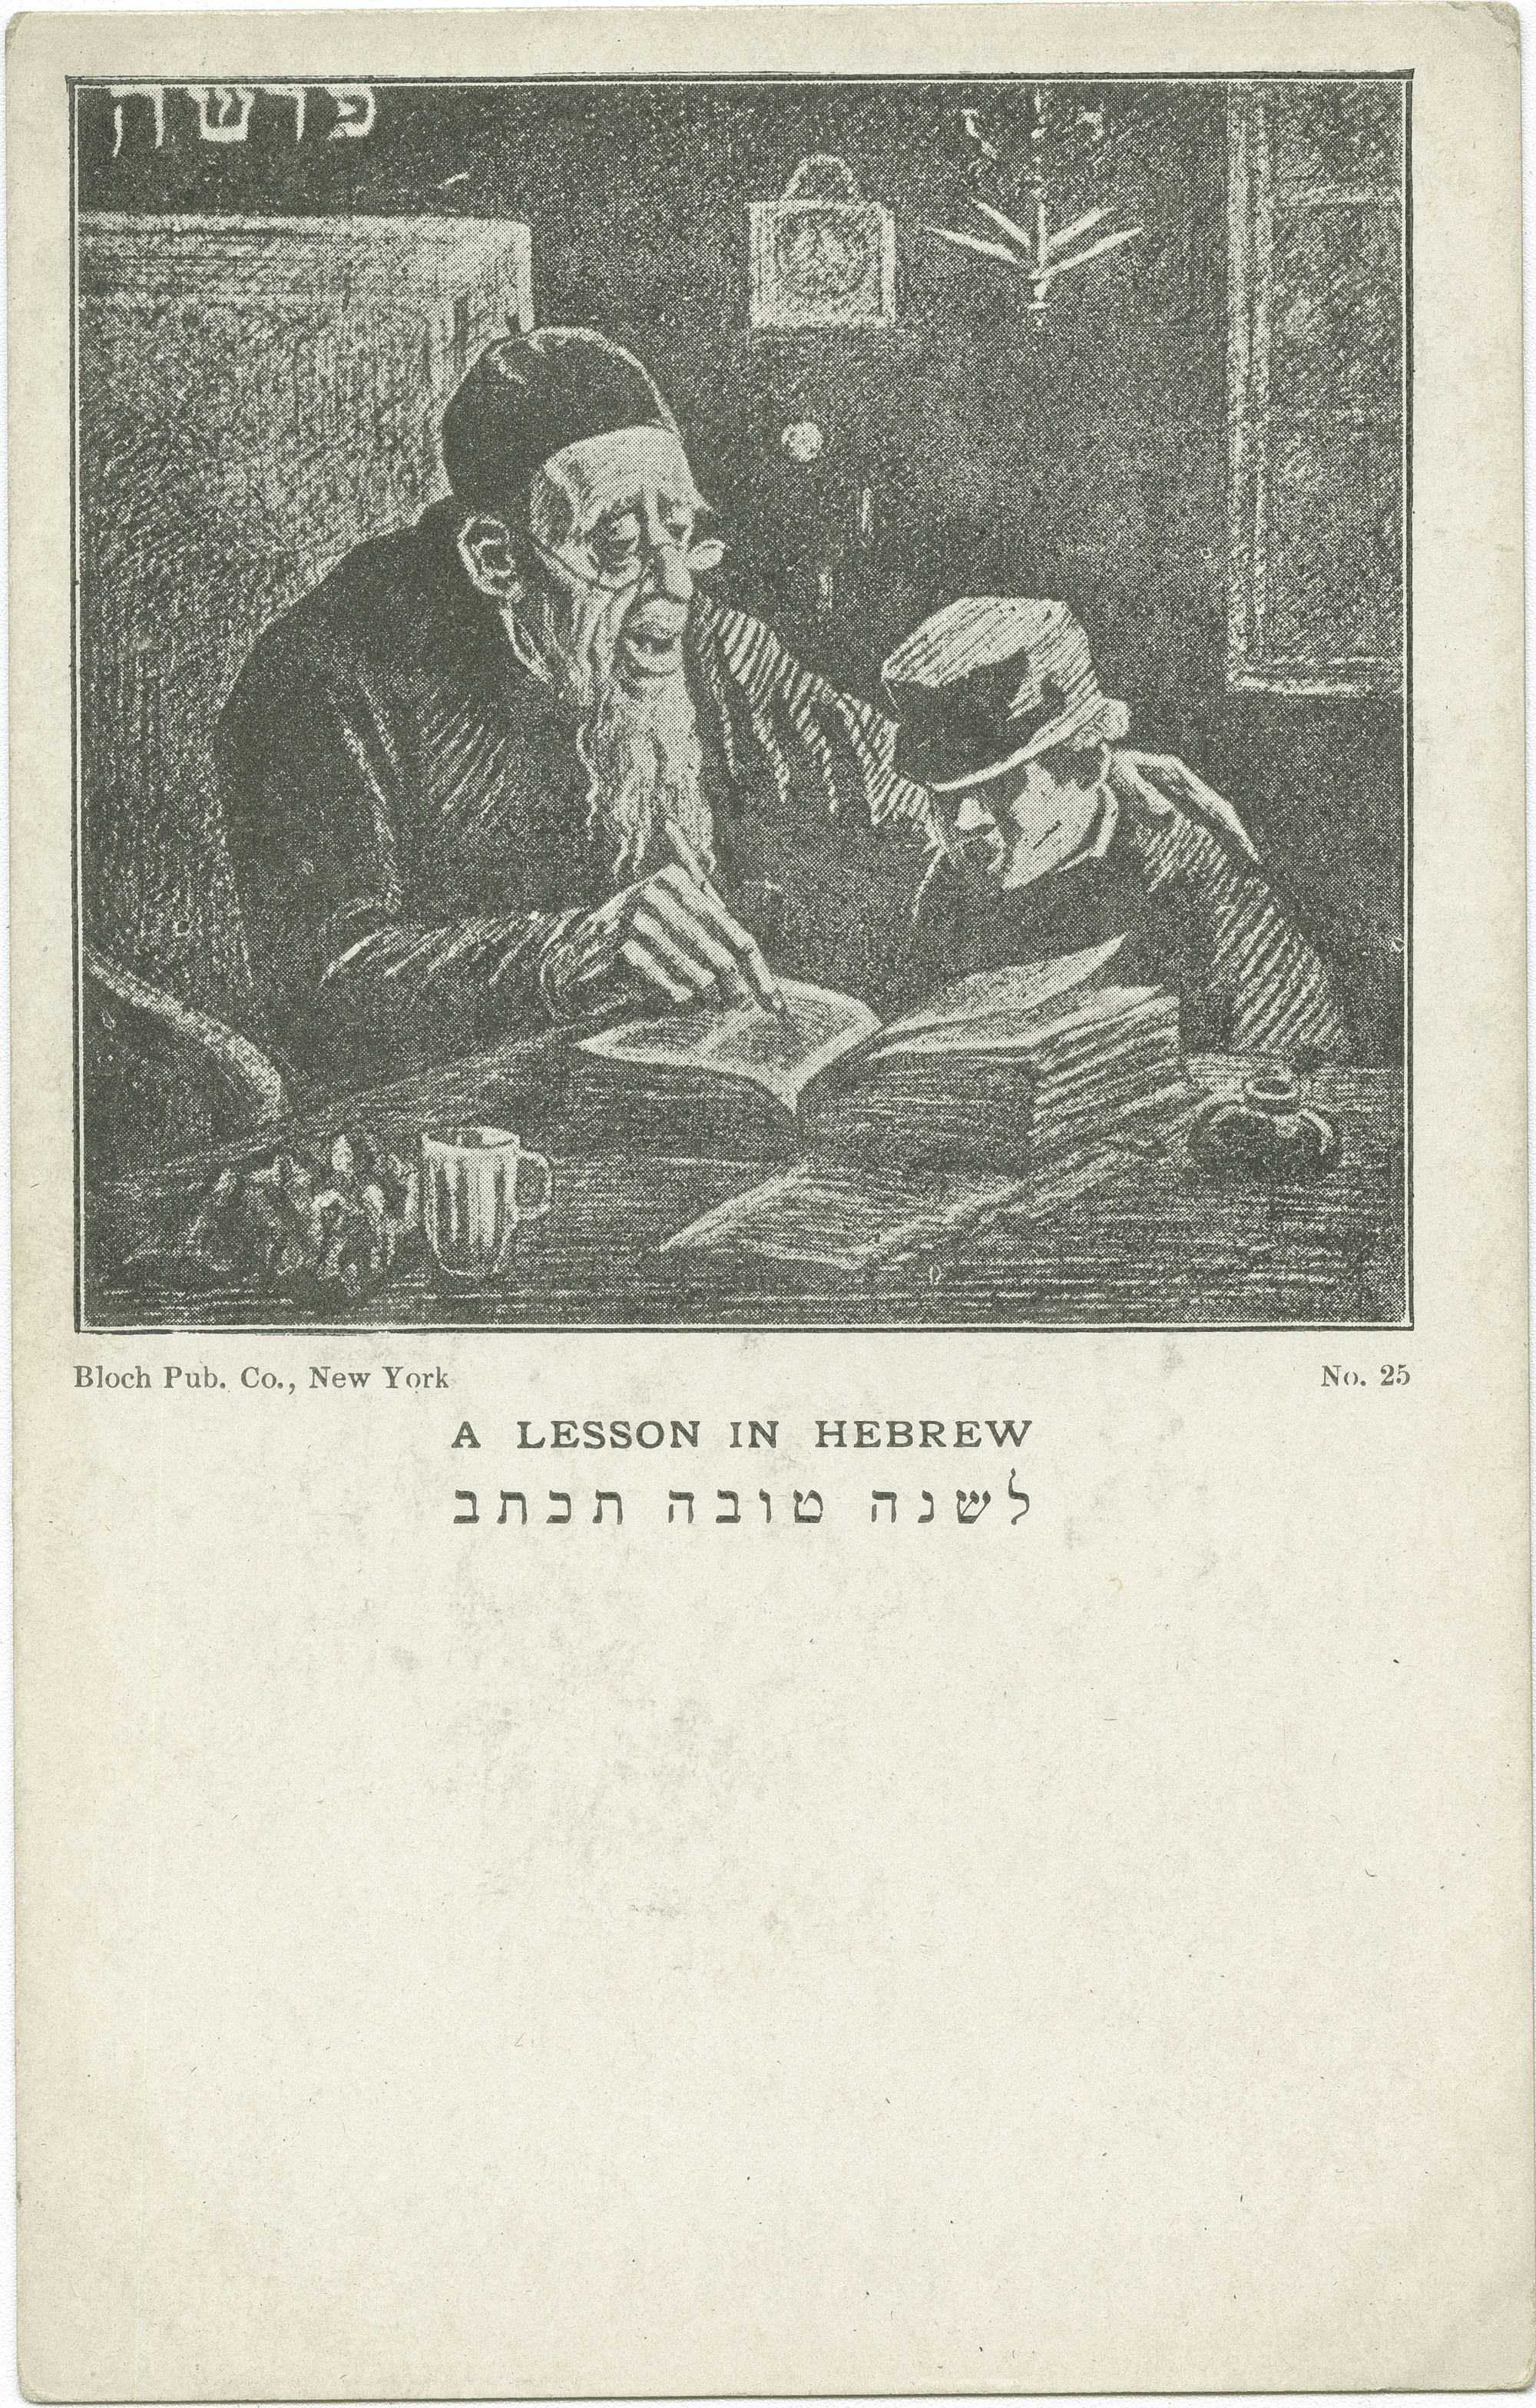 A Lesson in Hebrew / לשנה טובה תכתב